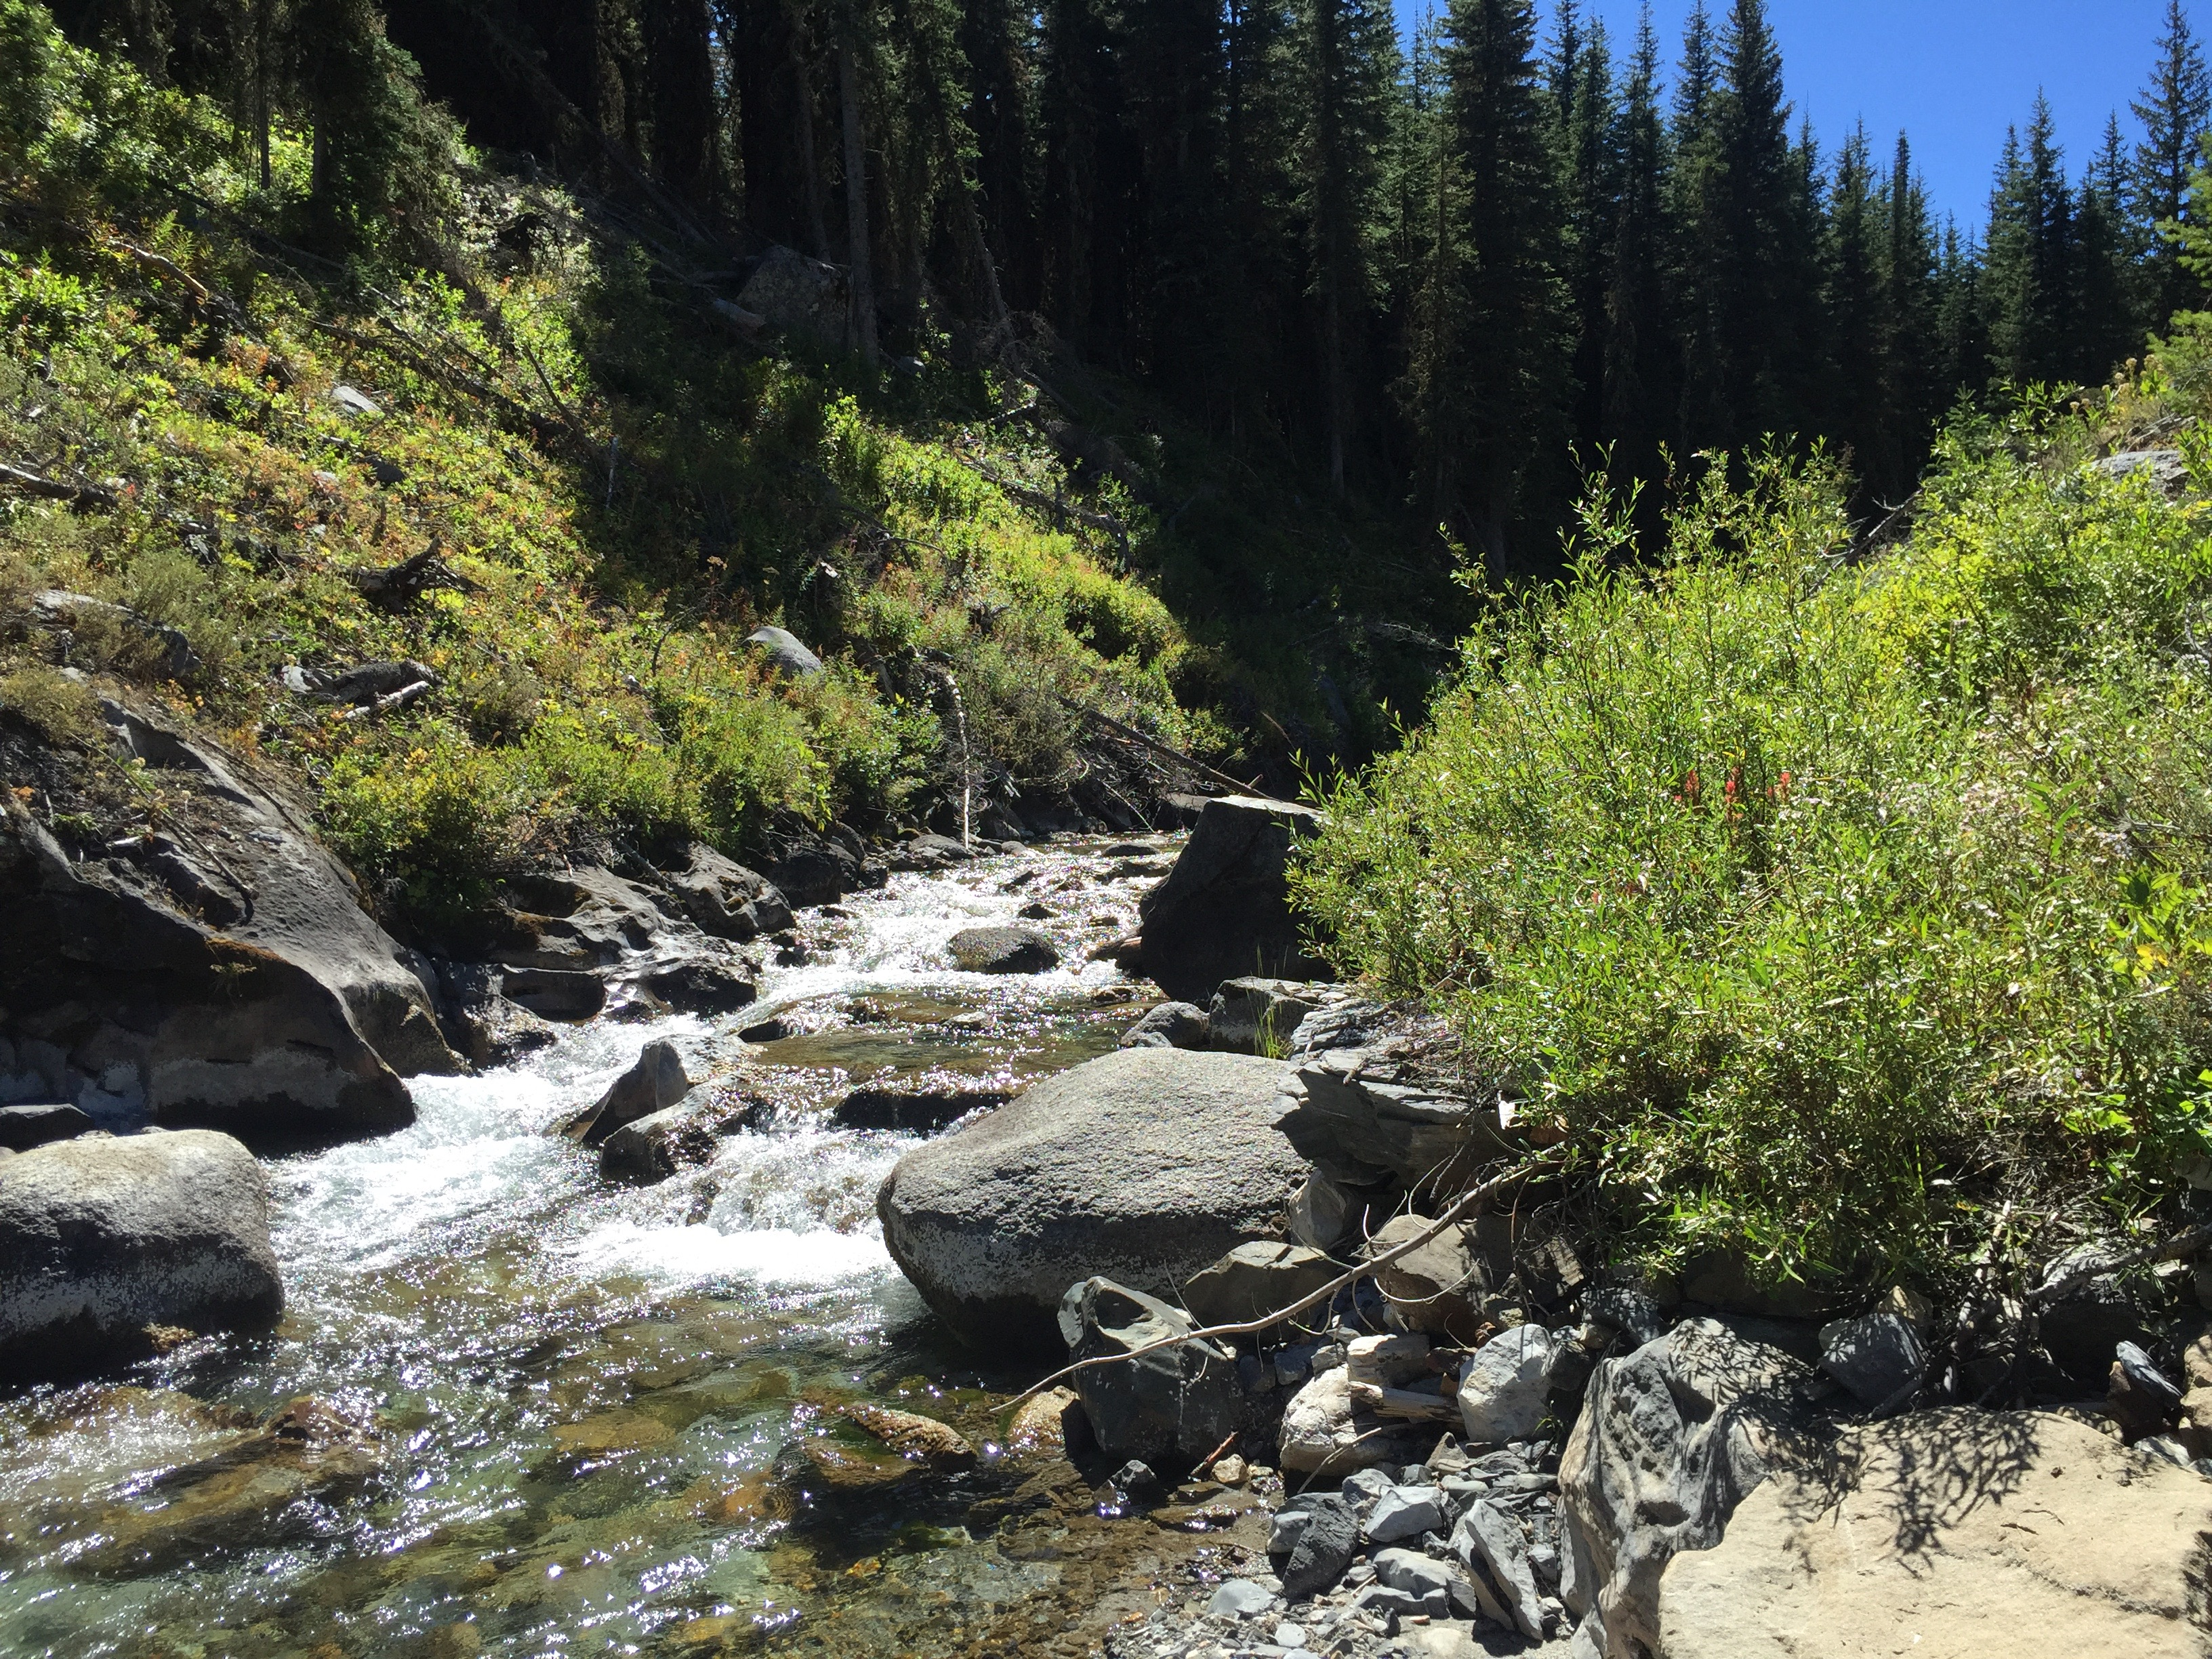 Hurricane Creek in the Wallowa Mountains and Eagle Cap Wilderness